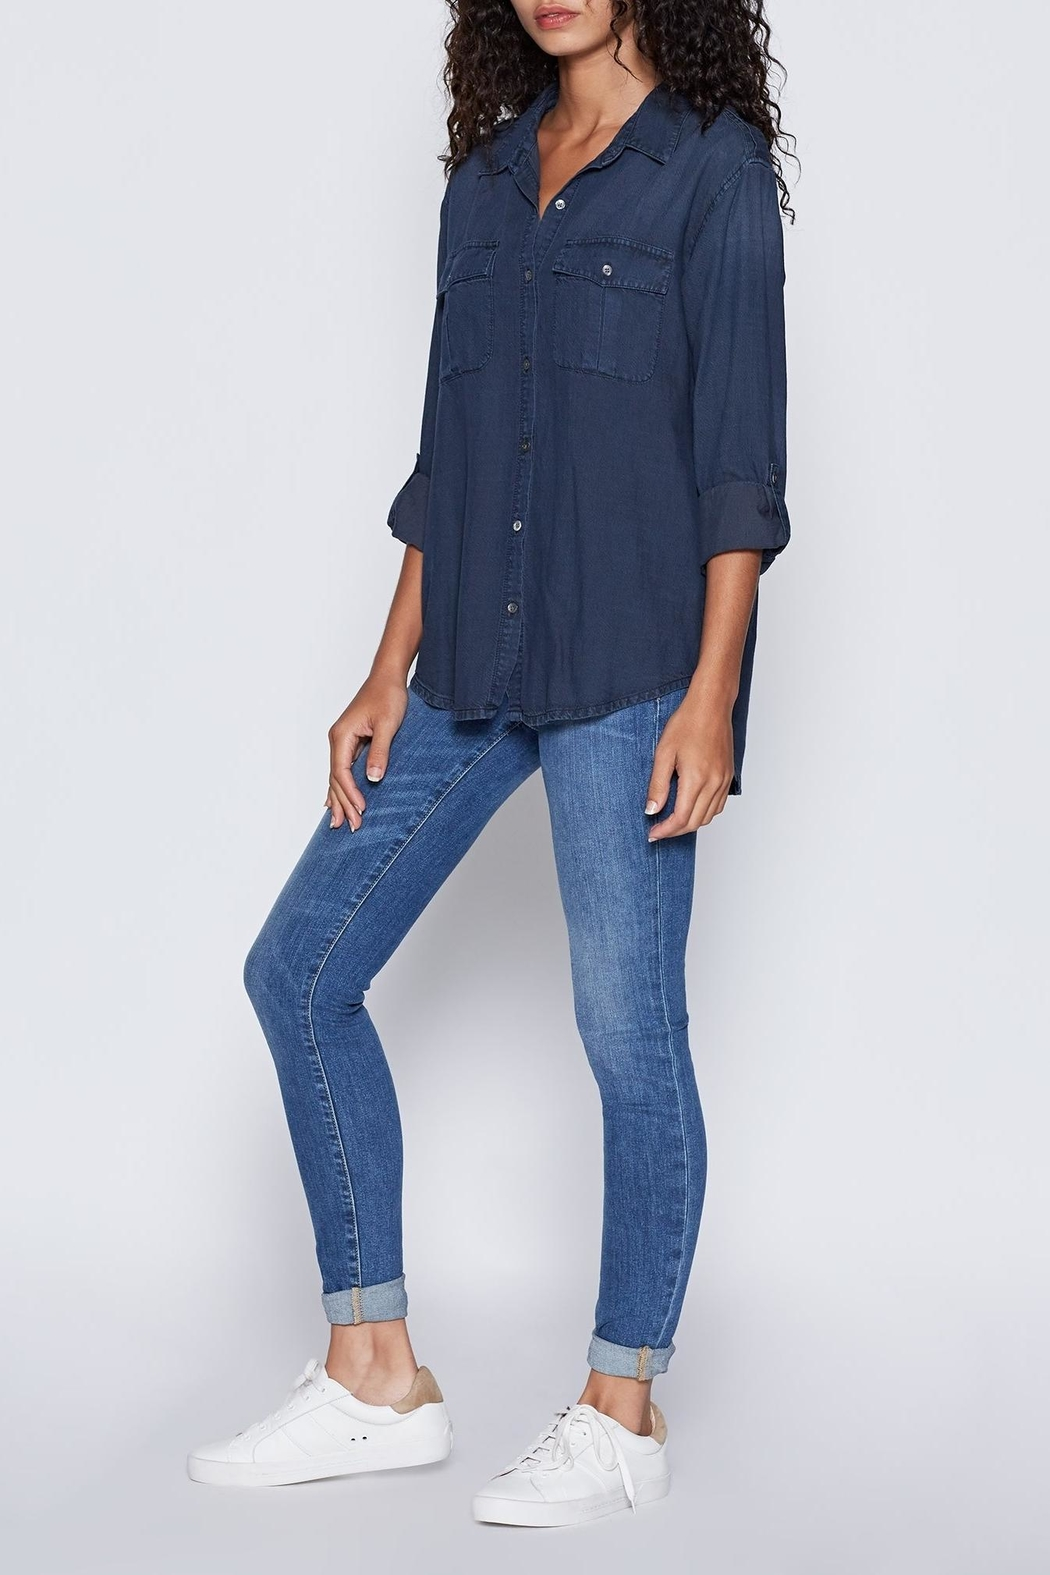 Joie Lidelle Chambray Top - Front Full Image